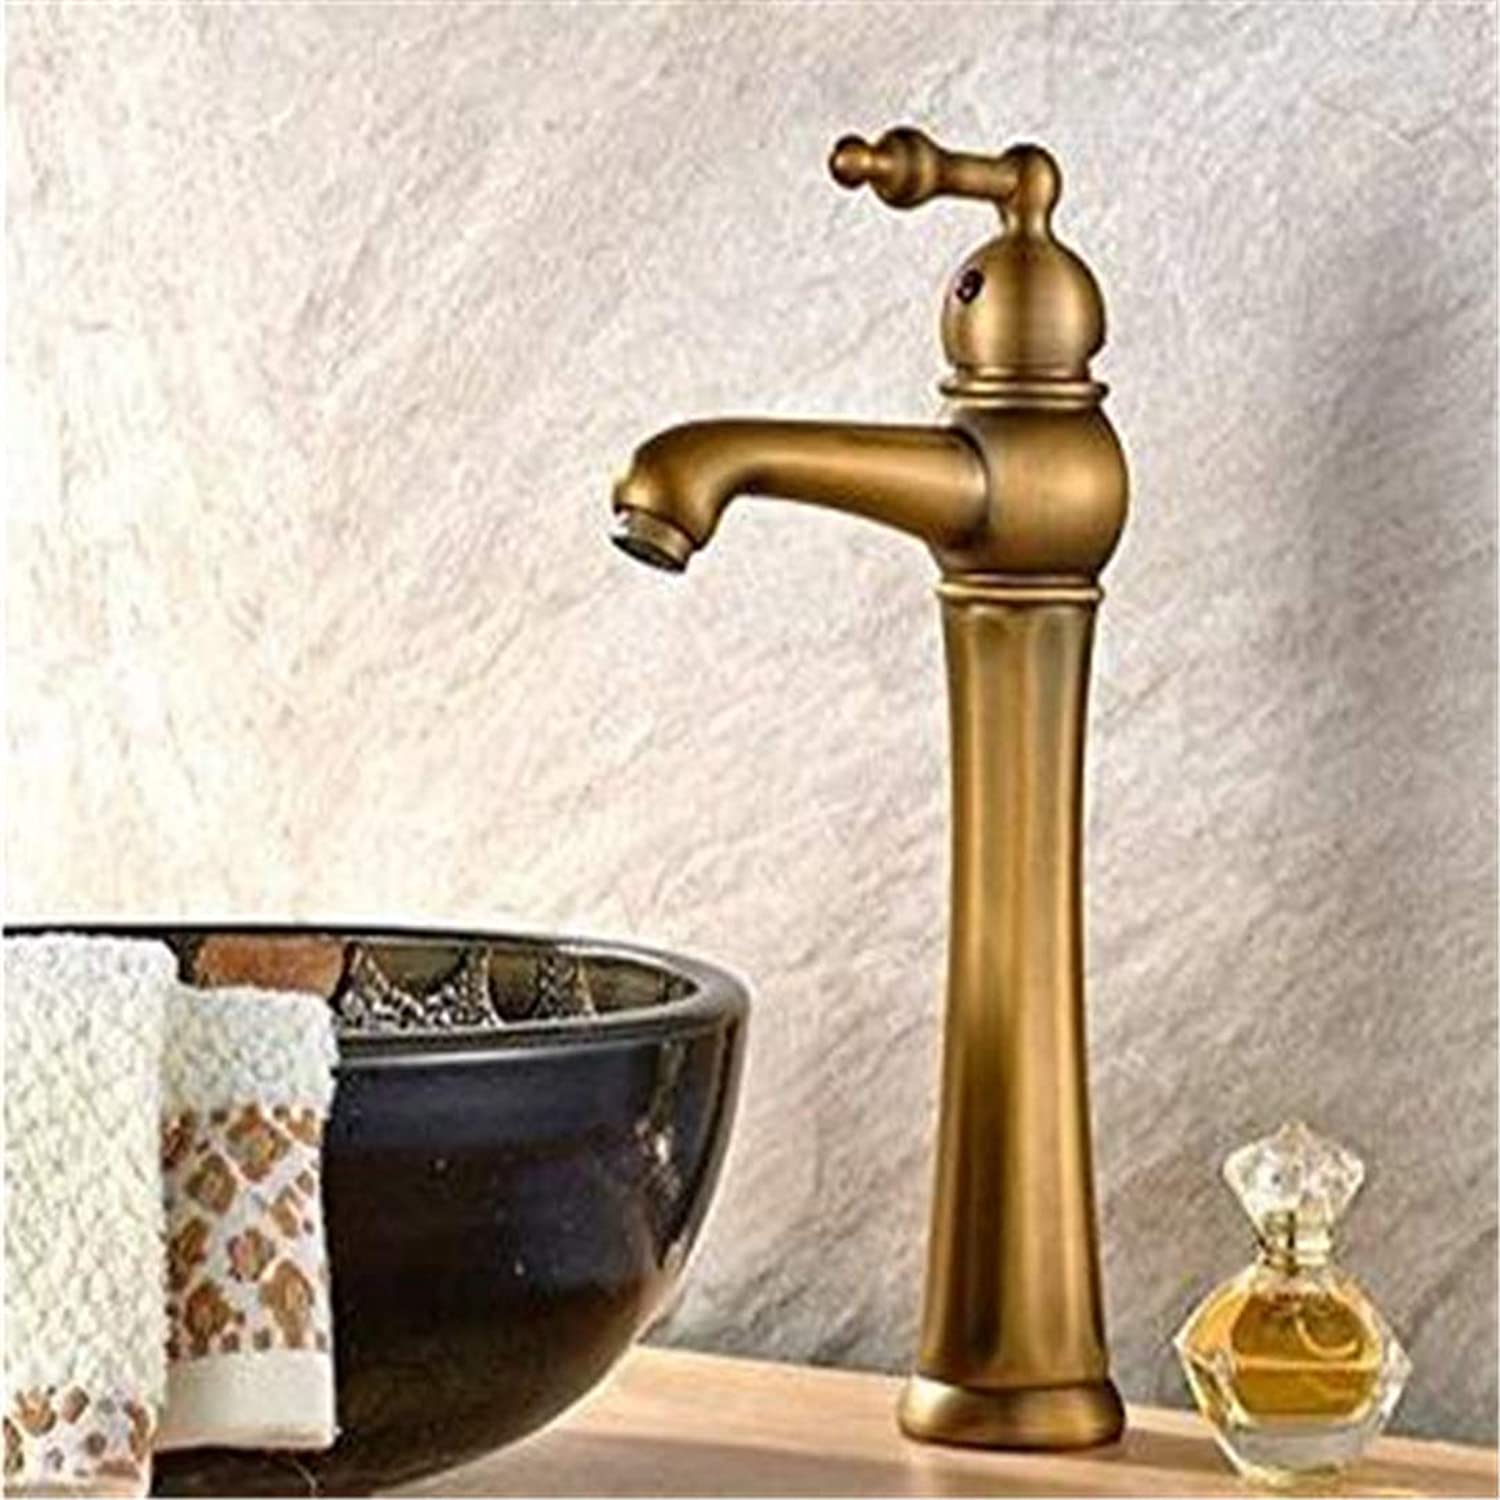 Double Handlefaucets Basin Mixer Faucet European Antique Bronze Wash Basins Basin Pots Home Basin Faucet Hot and Cold Wash Basin Faucet